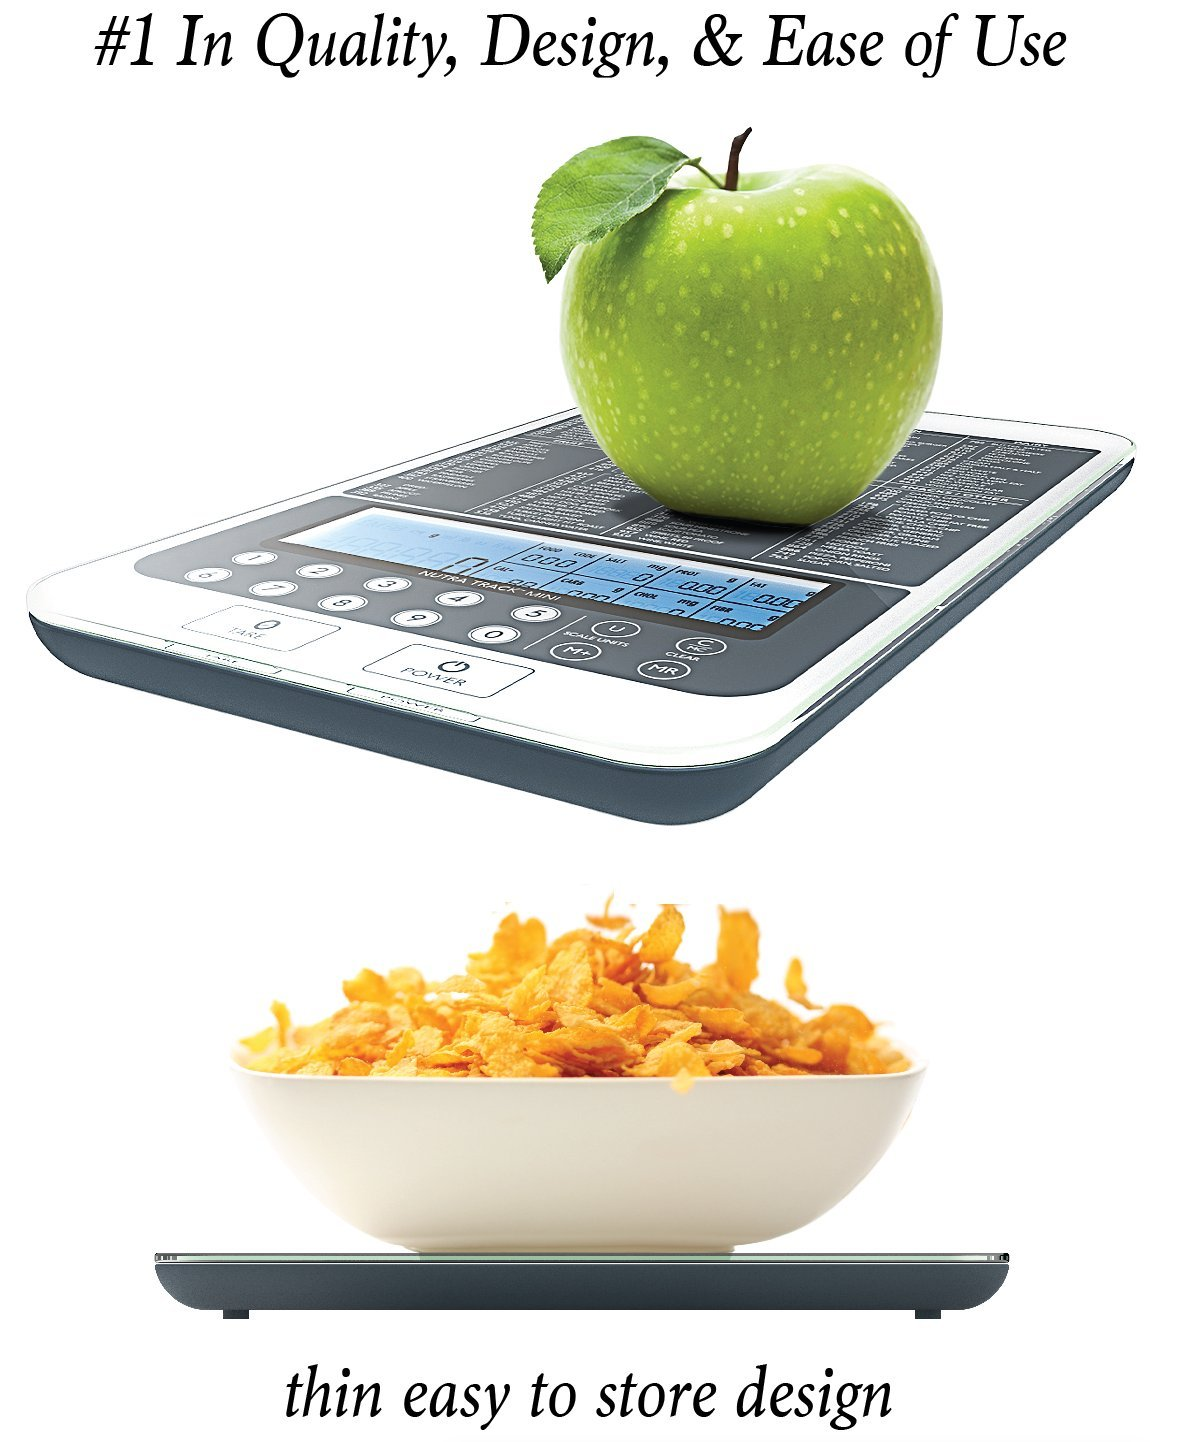 Mackie, NutraTrack Mini Digital Scale, the most advanced food scale on Amazon. Our food scale includes a calorie calculator and macros calculator. We are the best food scale on the market.